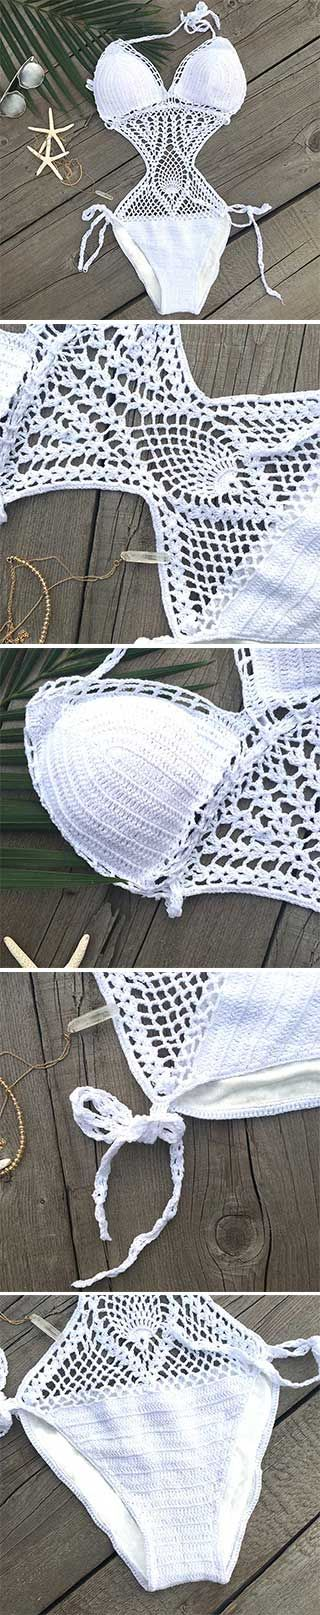 Keep it simple and sexy as hell.Own it, ONLY $22.99, ladies! 100% cool and chic feeling just comes from HAND-MADE Crochet Bikini Set. See more stylish collection at CUPSHE.COM !